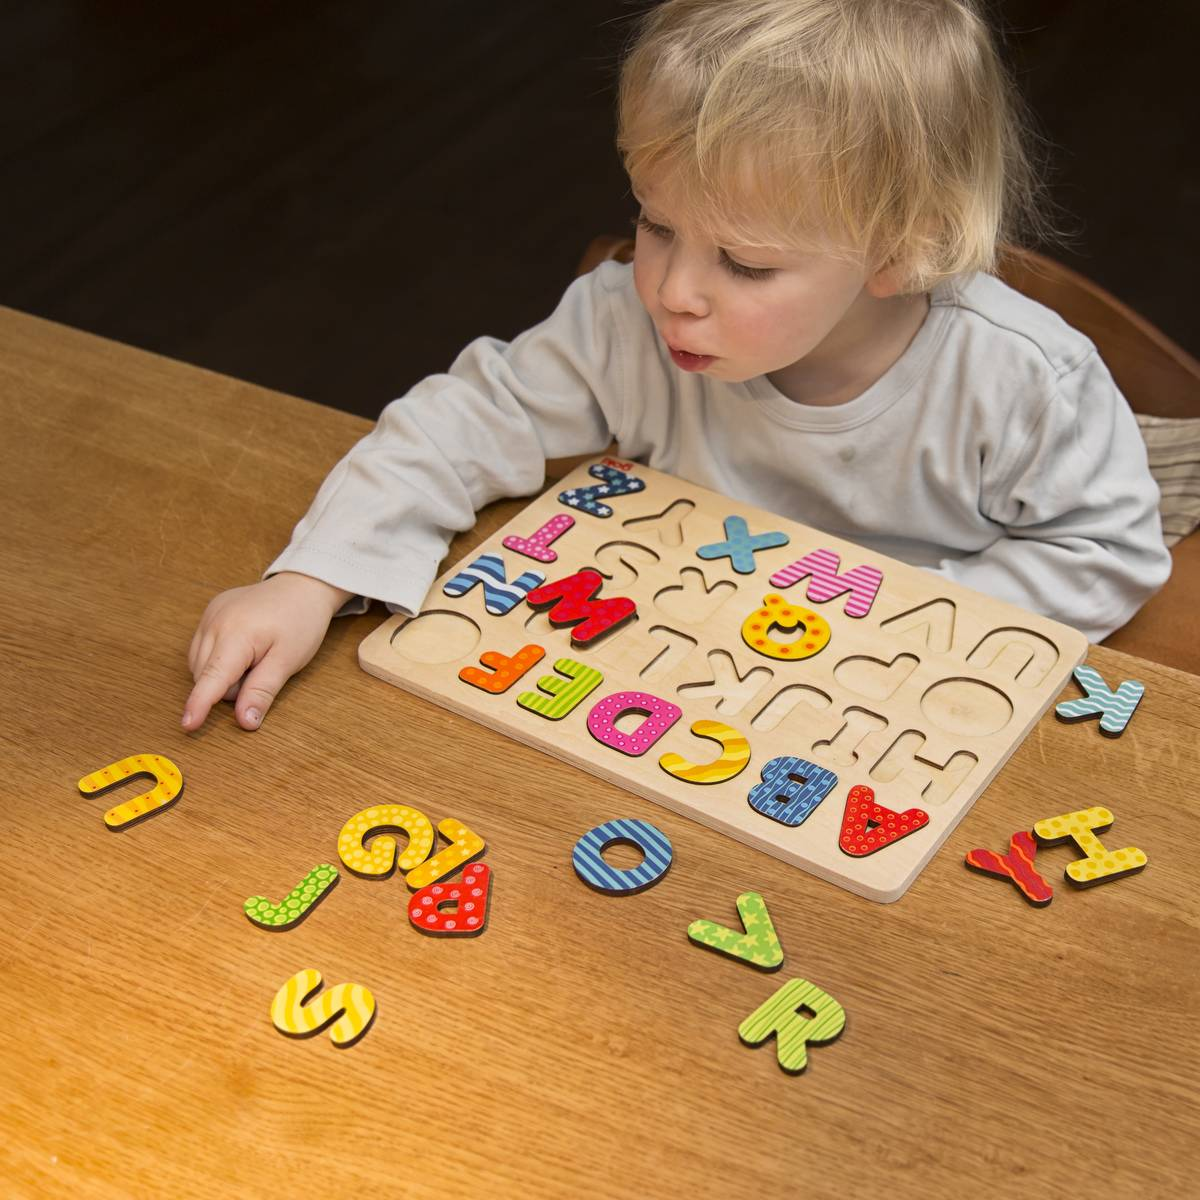 Boy, 2 years old, playing with an ABC puzzle